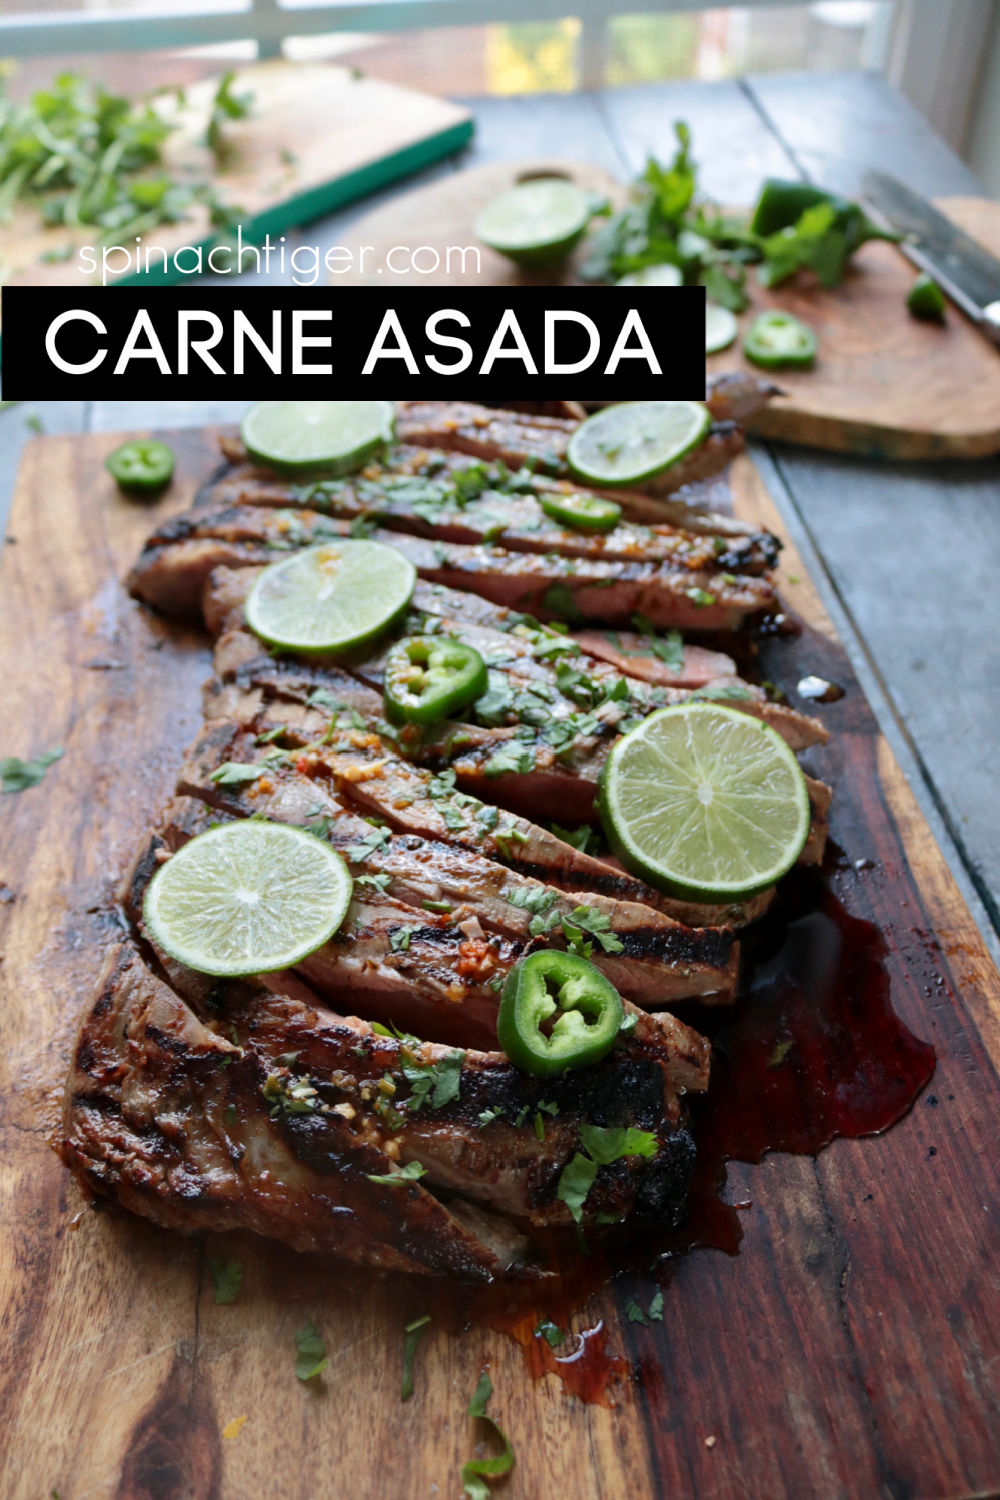 How to Marinate carne asada for delicious flavorful flank steak or skirt steak. Using olive oil, lime, orange juice, coconut aminos, cumin, garlic and chili powder. #carneasadarecipe #flanksteak #flanksteakrecipe #carneasadamarinade #grillmeat #grillflanksteak via @angelaroberts